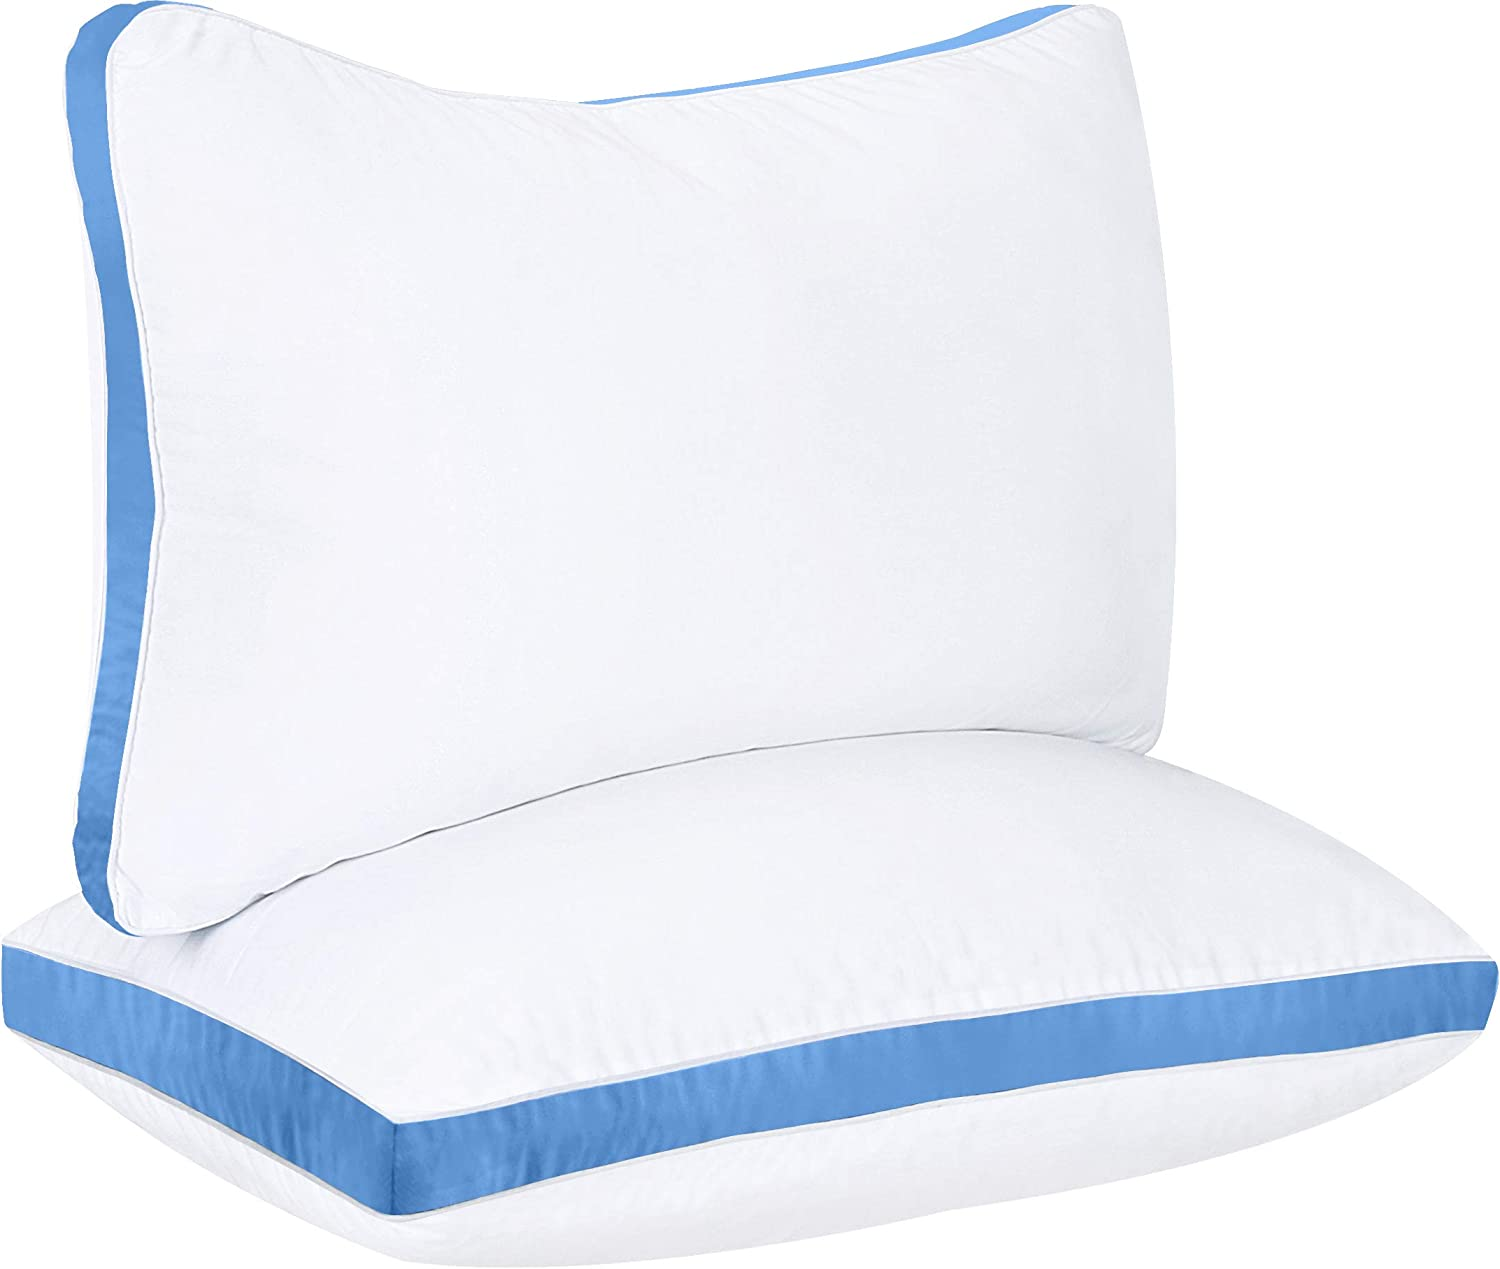 Utopia Bedding Gusseted Pillow (2-Pack) Premium Quality Bed Pillows - Side Back Sleepers - Blue Gusset - Queen - 18 x 26 Inches: Home & Kitchen